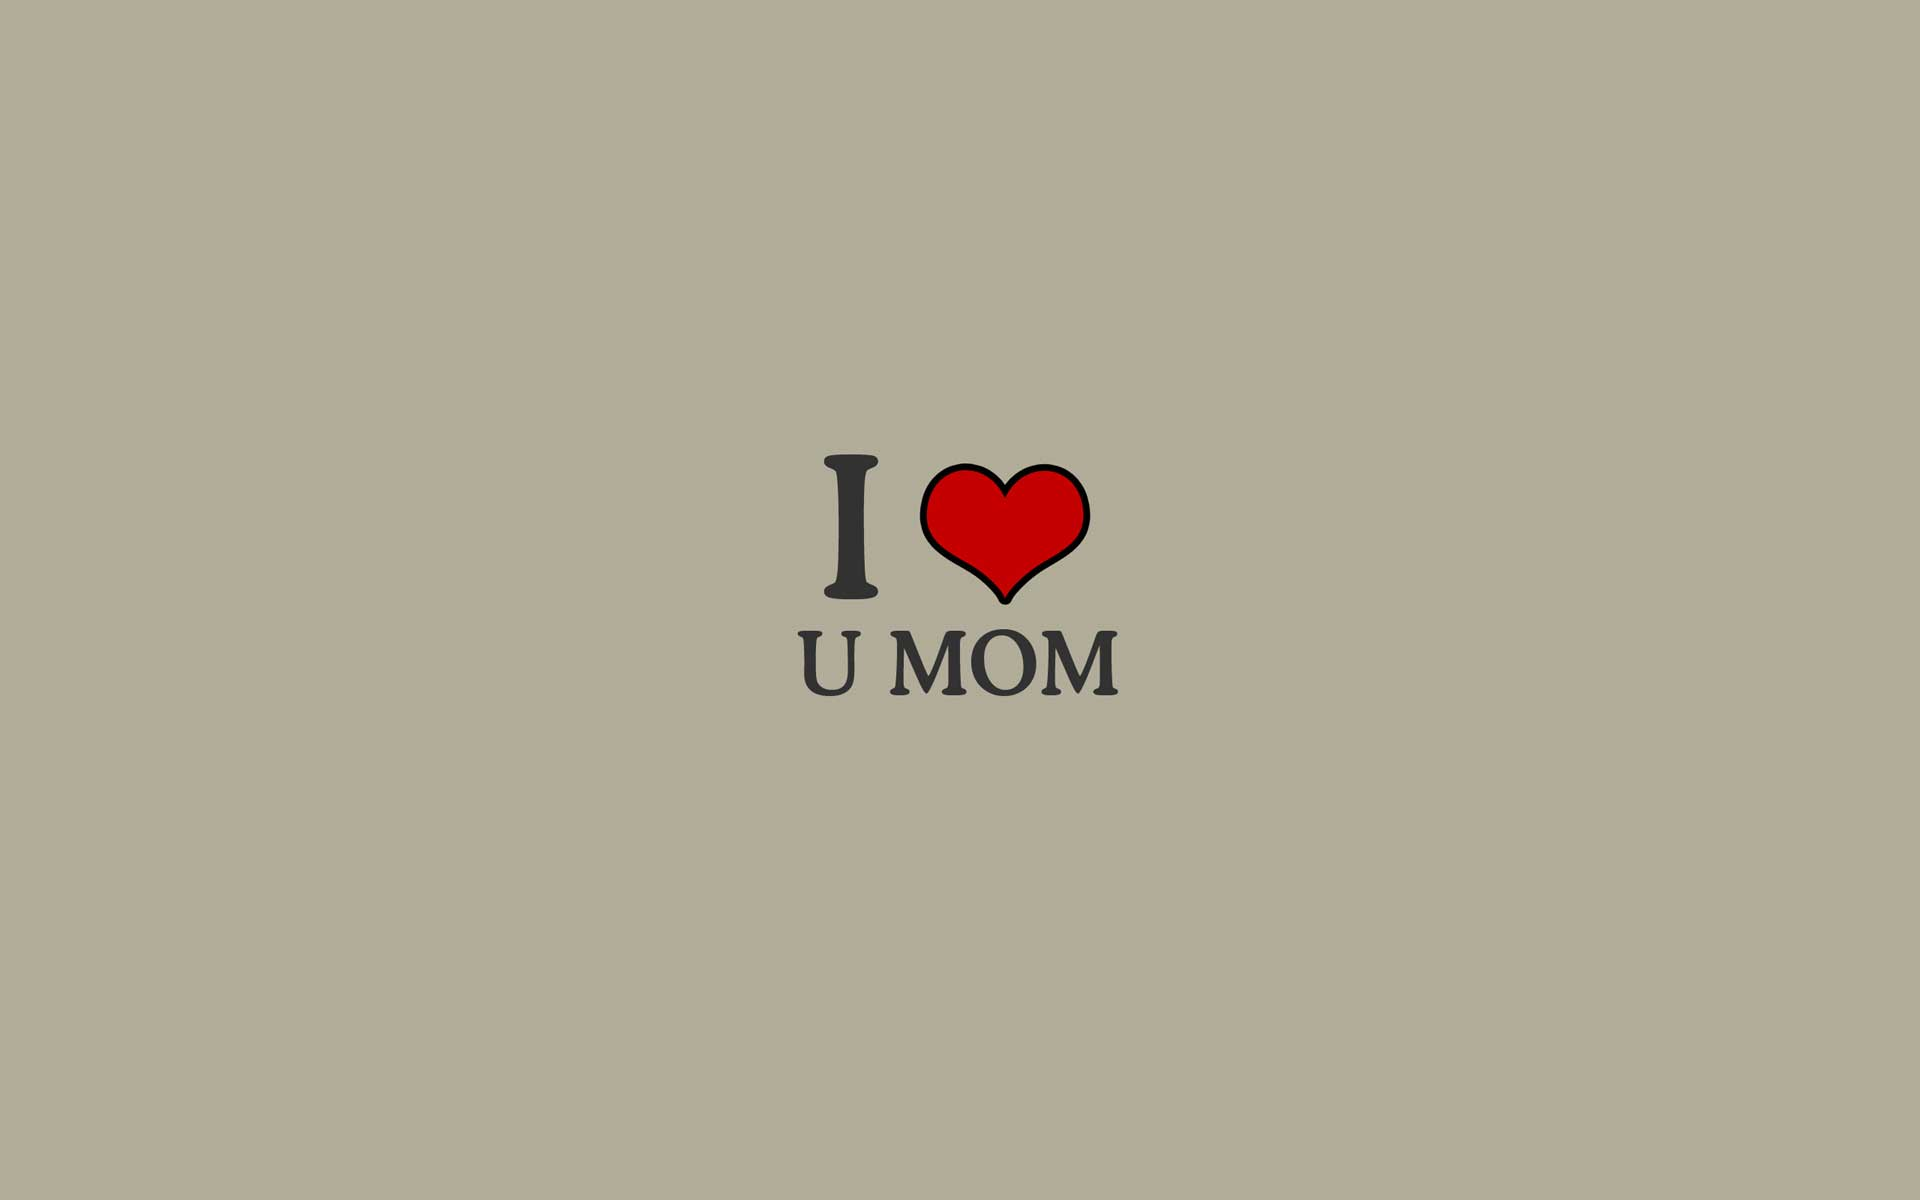 I Love My Mom And Dad Wallpapers Hd Wallpaper Cave Wallpaper flare collects most beautiful hd wallpapers for pc, mobile and tablet desktop, including 720p, 1080p, 2k, 4k, 5k, 8k resolutions, all wallpapers are free download. i love my mom and dad wallpapers hd